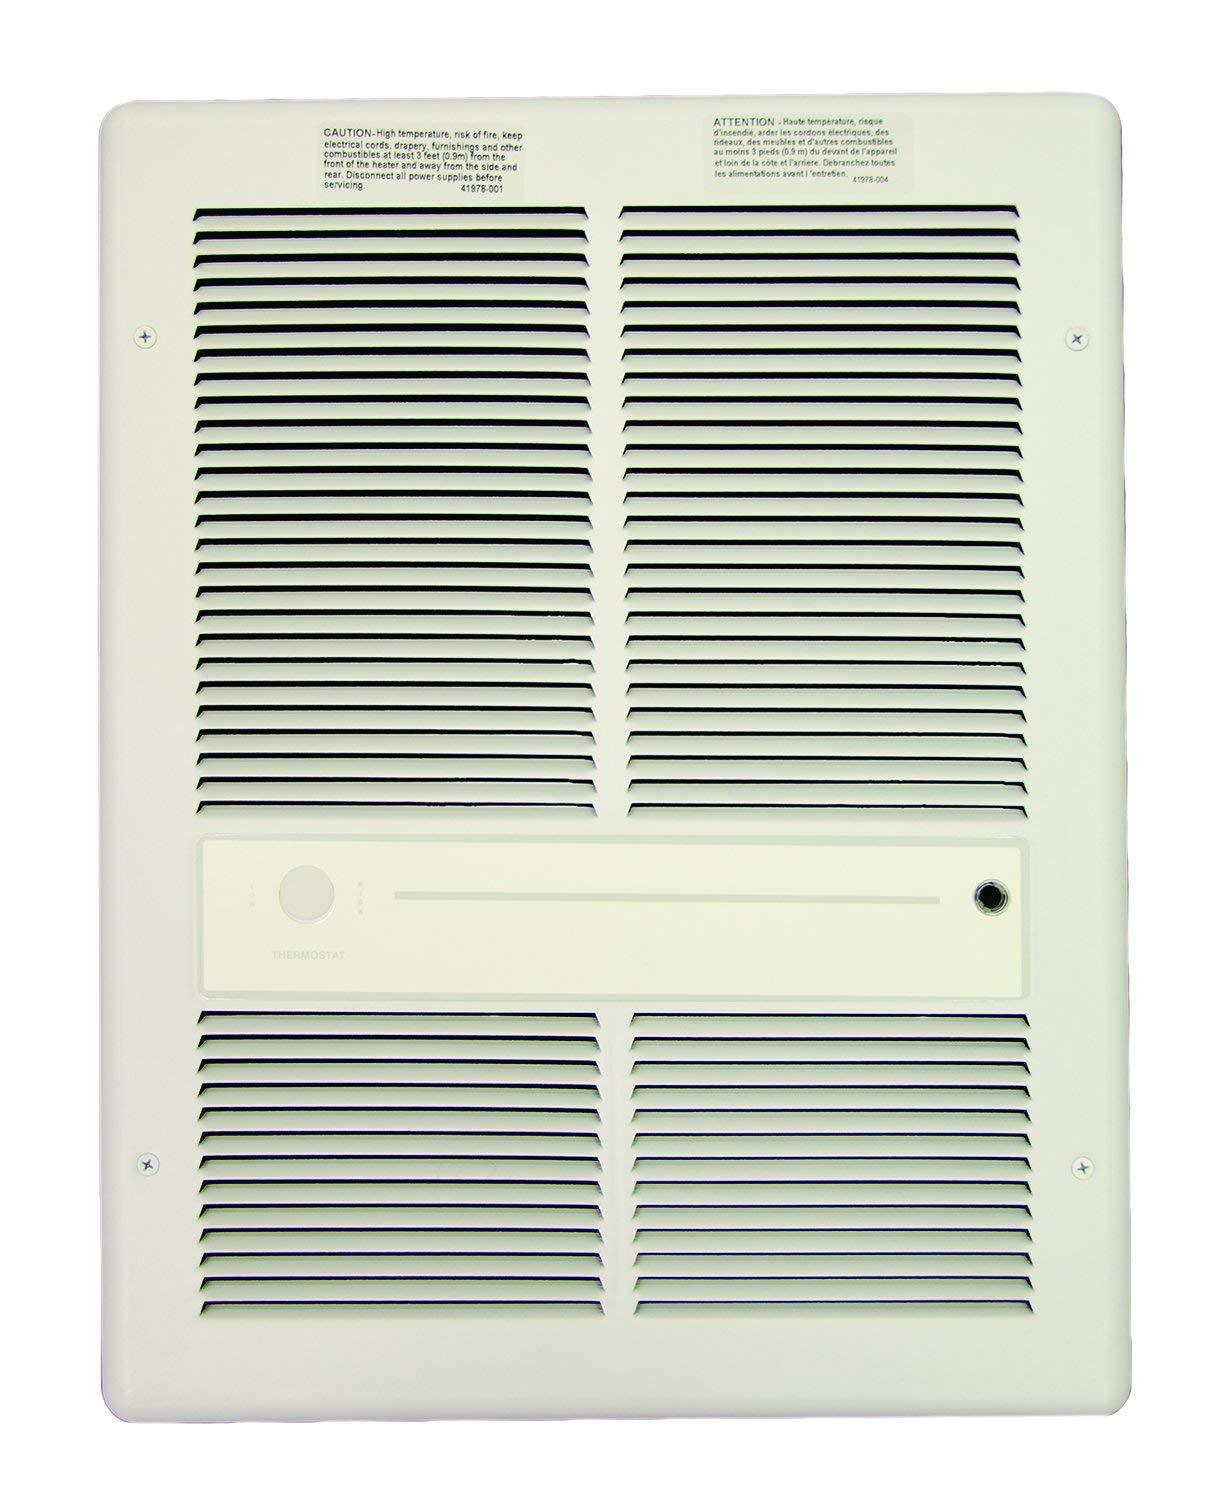 TPI 2000W 277V 3310 Series Fan Forced Wall Heater (White) - Without Summer Fan Switch - No Thermostat - G3314RPW